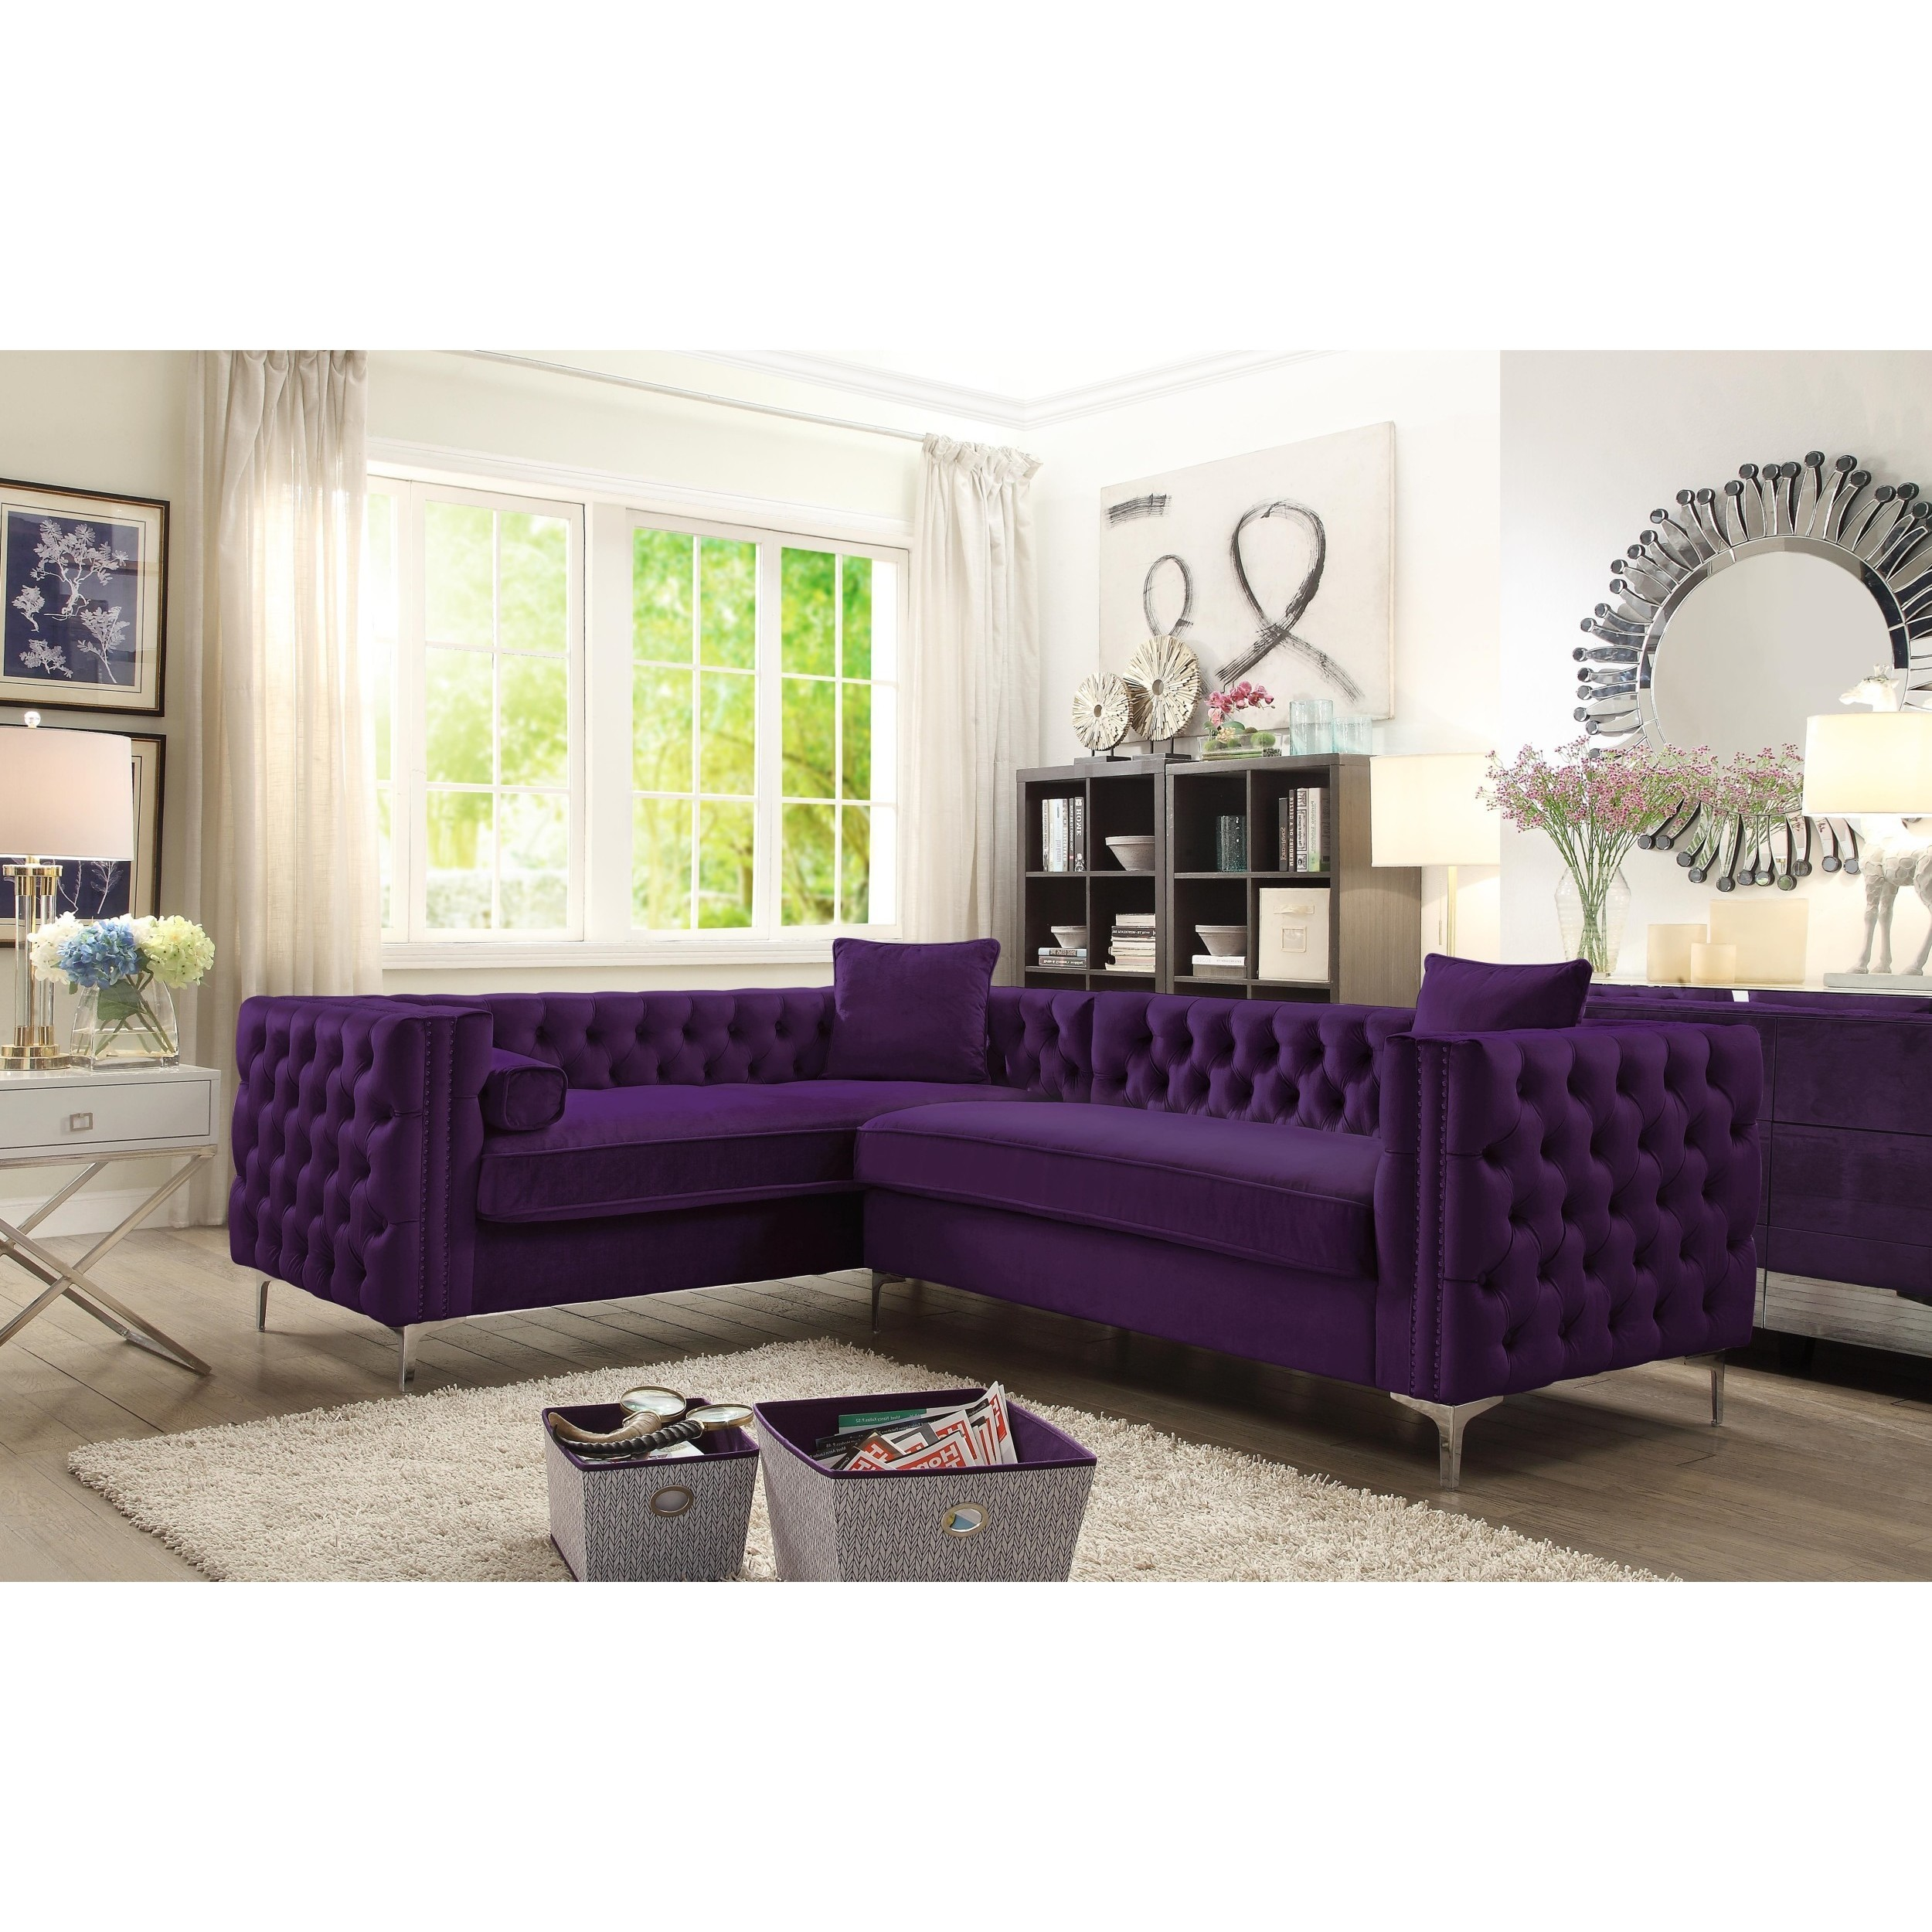 Shop Chic Home Susan Elegant Velvet Deeply Tufted Left Facing Sectional Sofa Overstock 17334107